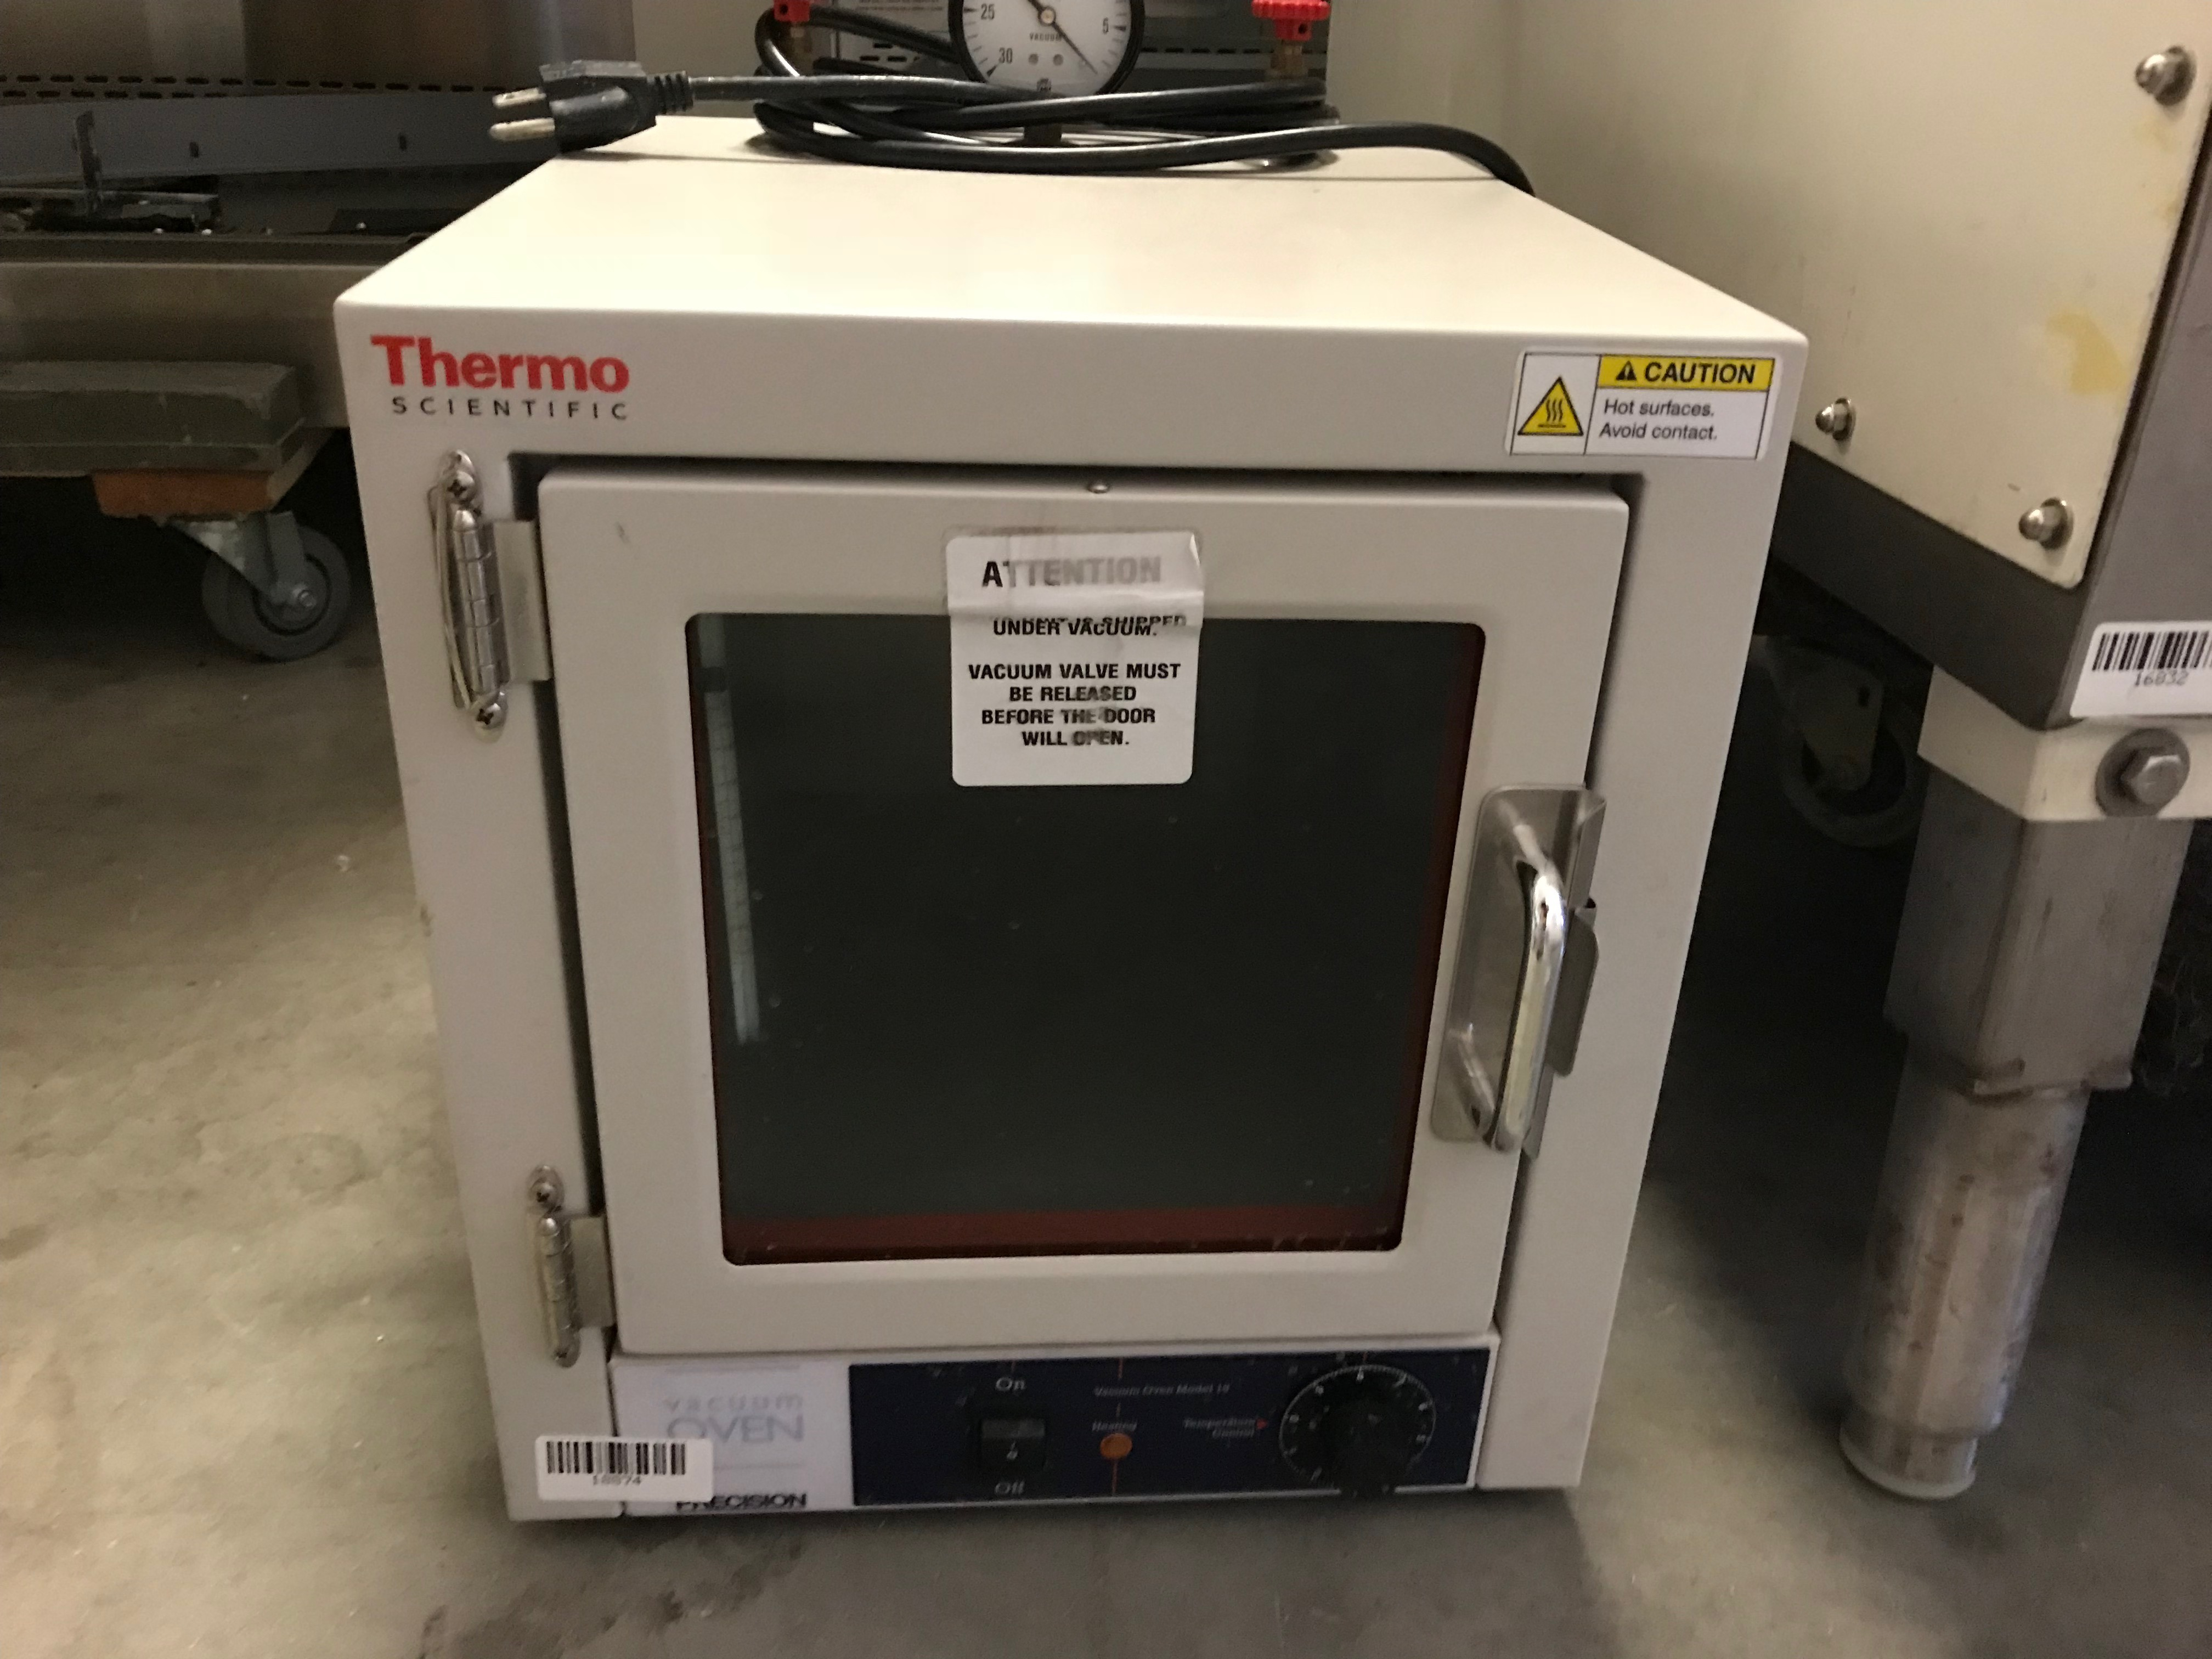 Thermo 6500 Vacuum Oven